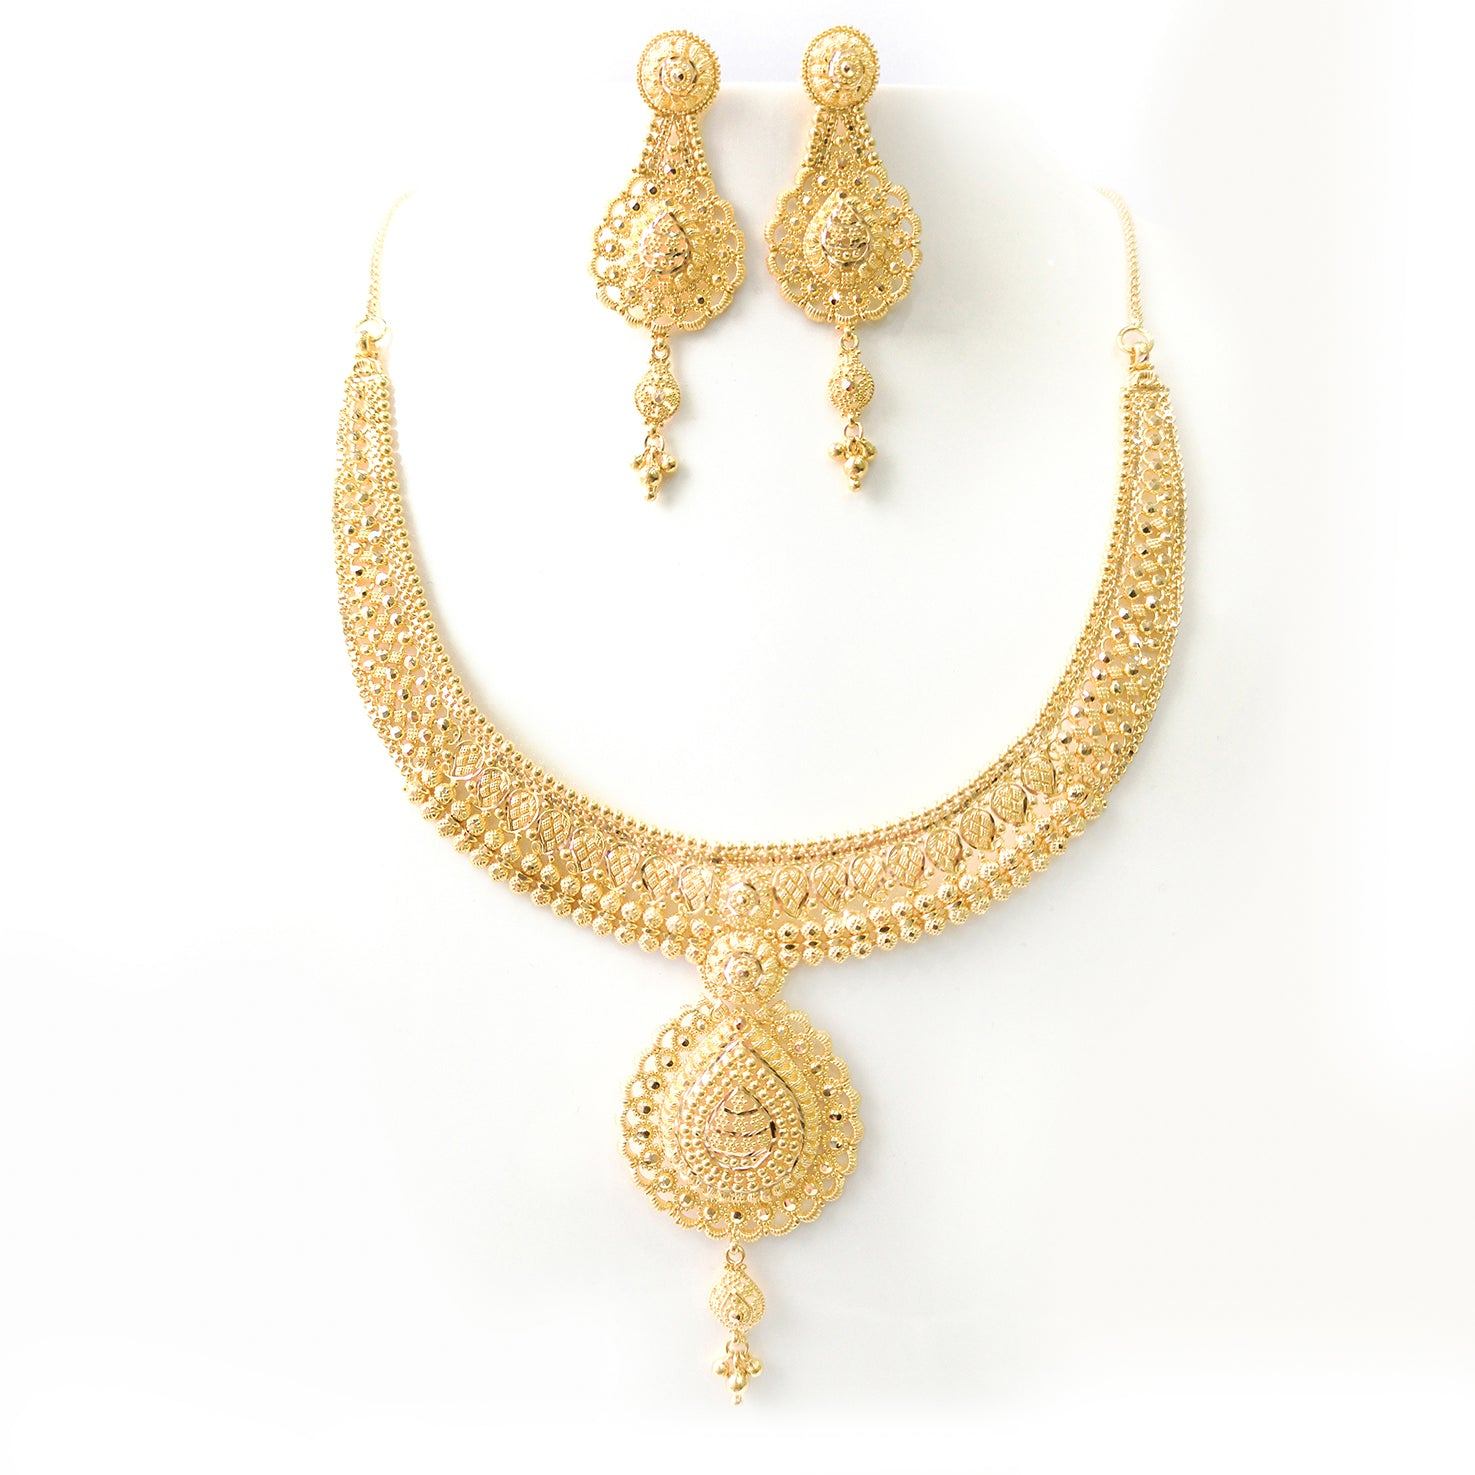 22ct Gold Necklace and Earrings Set with Diamond Cut Filigree Design N&E-7582